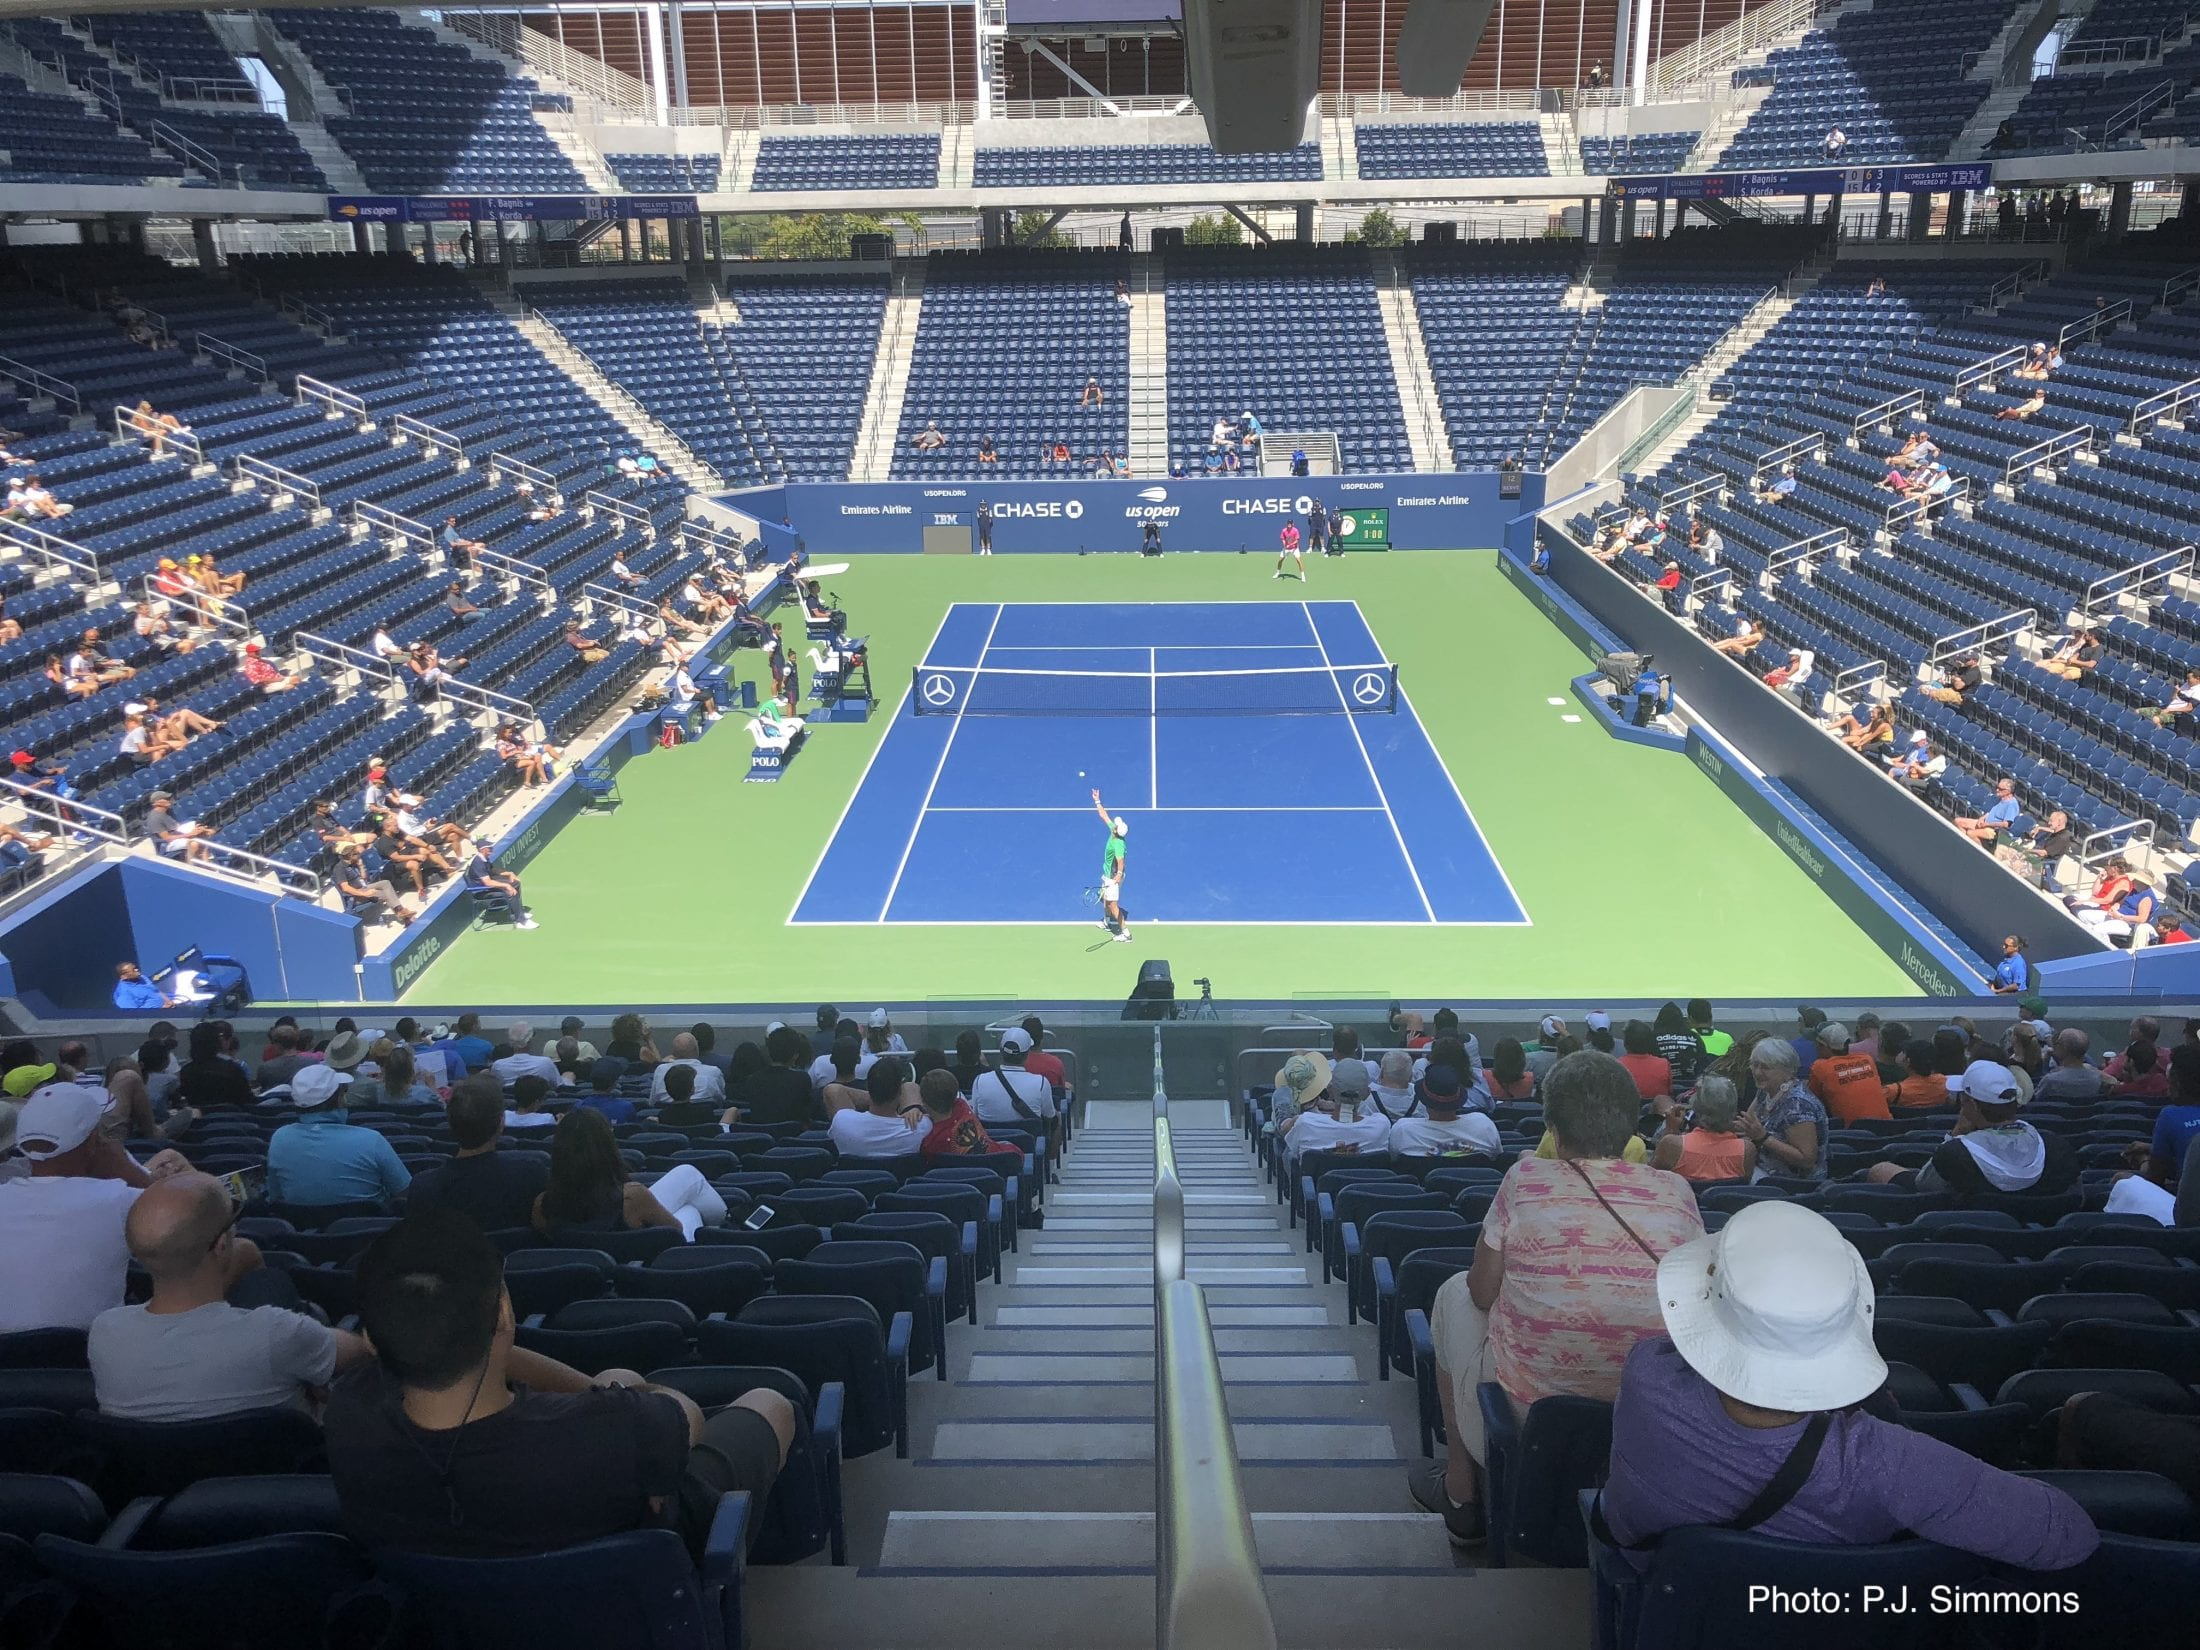 A Serious Tennis Fan\'s Top 10 Tips for the 2019 US Open ...